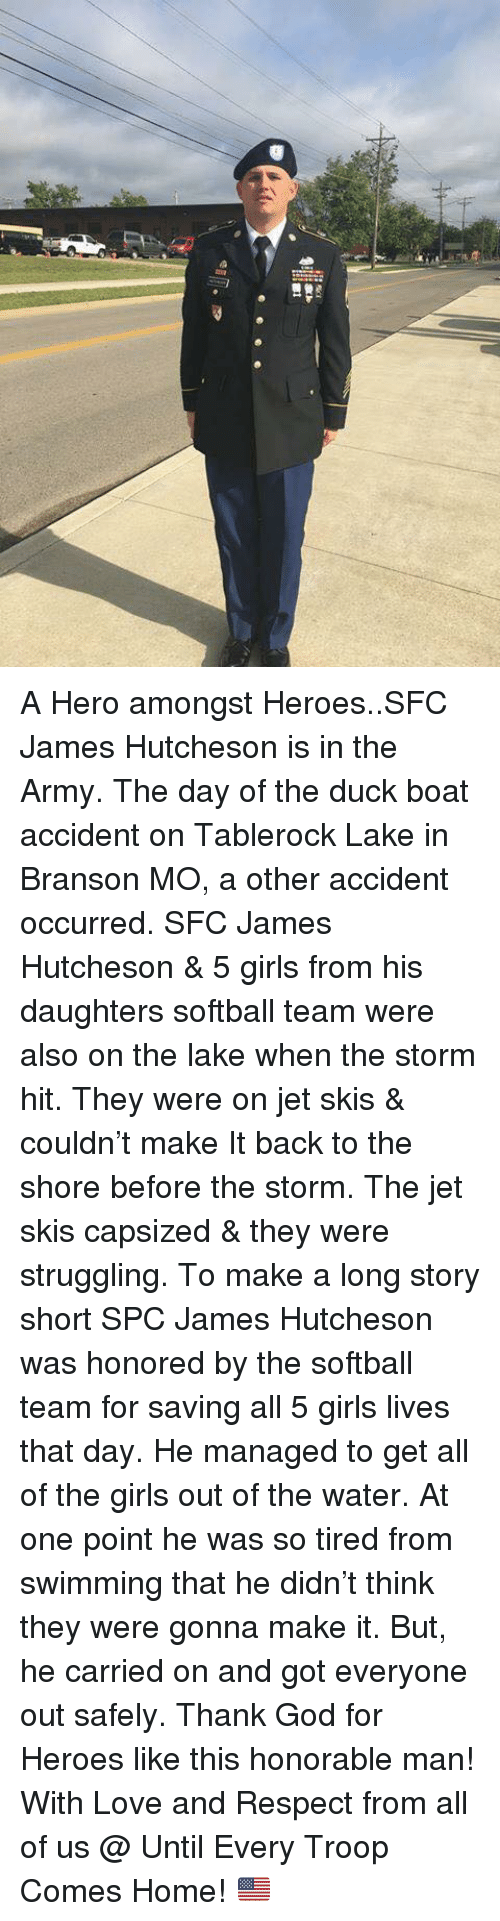 Girls, God, and Love: A Hero amongst Heroes..SFC James Hutcheson is in the Army. The day of the duck boat accident on Tablerock Lake in Branson MO, a other accident occurred. SFC James Hutcheson & 5 girls from his daughters softball team were also on the lake when the storm hit. They were on jet skis & couldn't make It back to the shore before the storm. The jet skis capsized & they were struggling. To make a long story short SPC James Hutcheson was honored by the softball team for saving all 5 girls lives that day. He managed to get all of the girls out of the water. At one point he was so tired from swimming that he didn't think they were gonna make it. But, he carried on and got everyone out safely. Thank God for Heroes like this honorable man! With Love and Respect from all of us @ Until Every Troop Comes Home! 🇺🇸